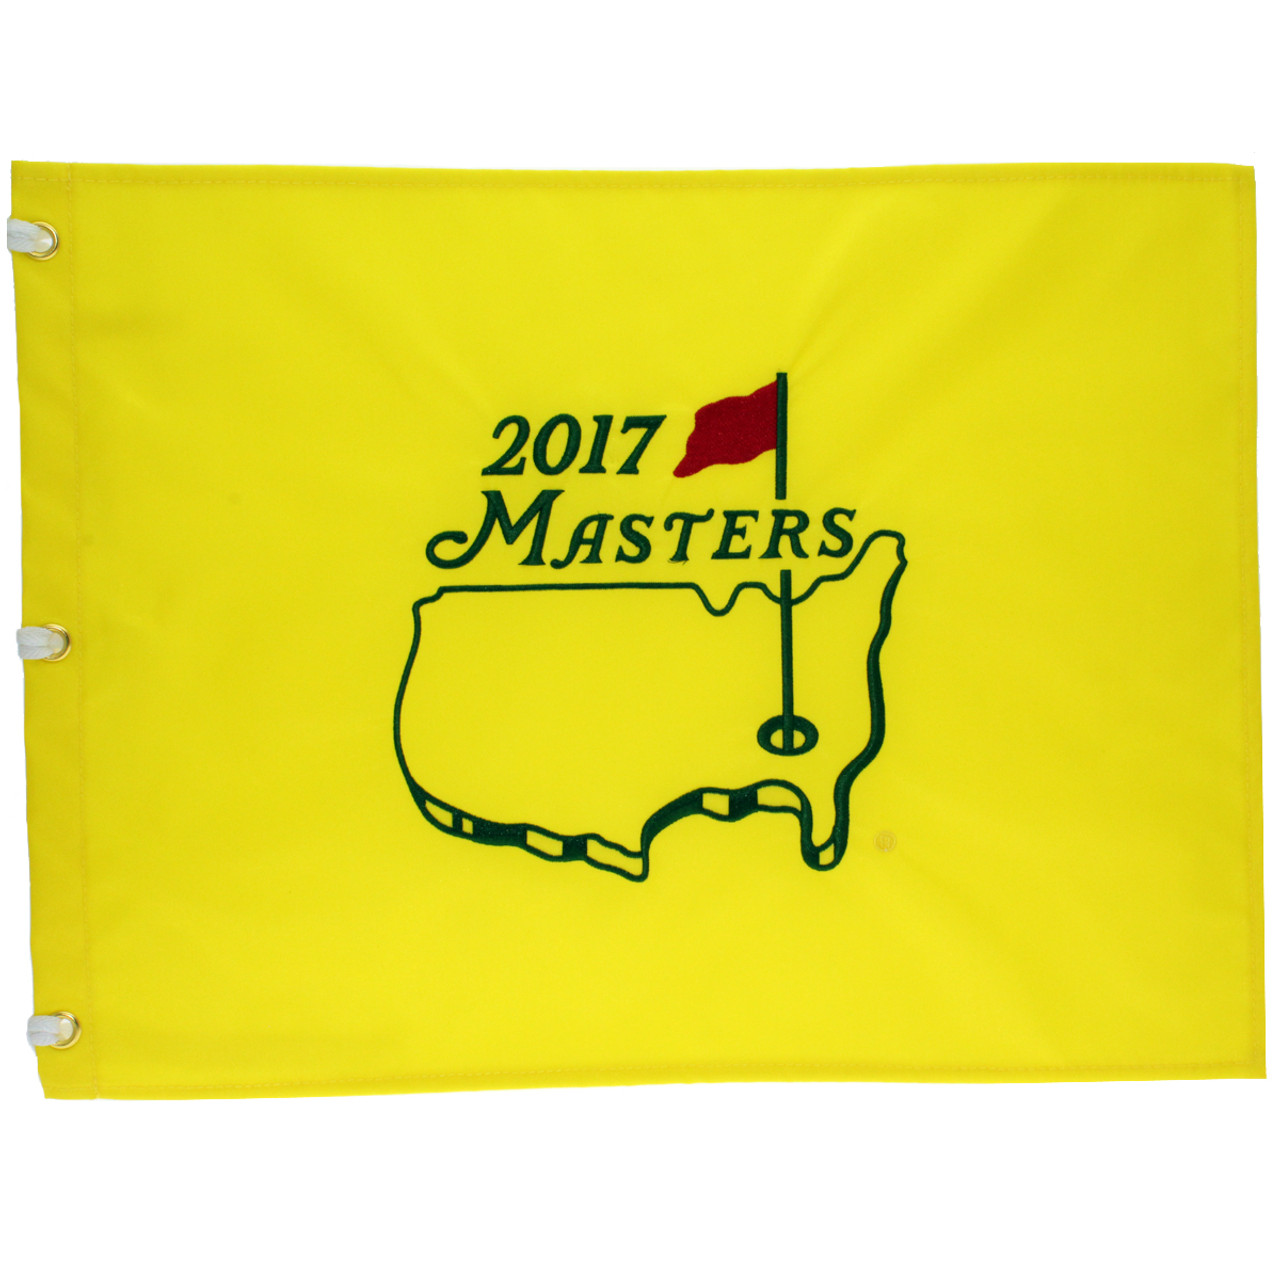 a108c62b8d5 2017 Masters Embroidered Golf Pin Flag - 2017 Dated Masters Pin Flags